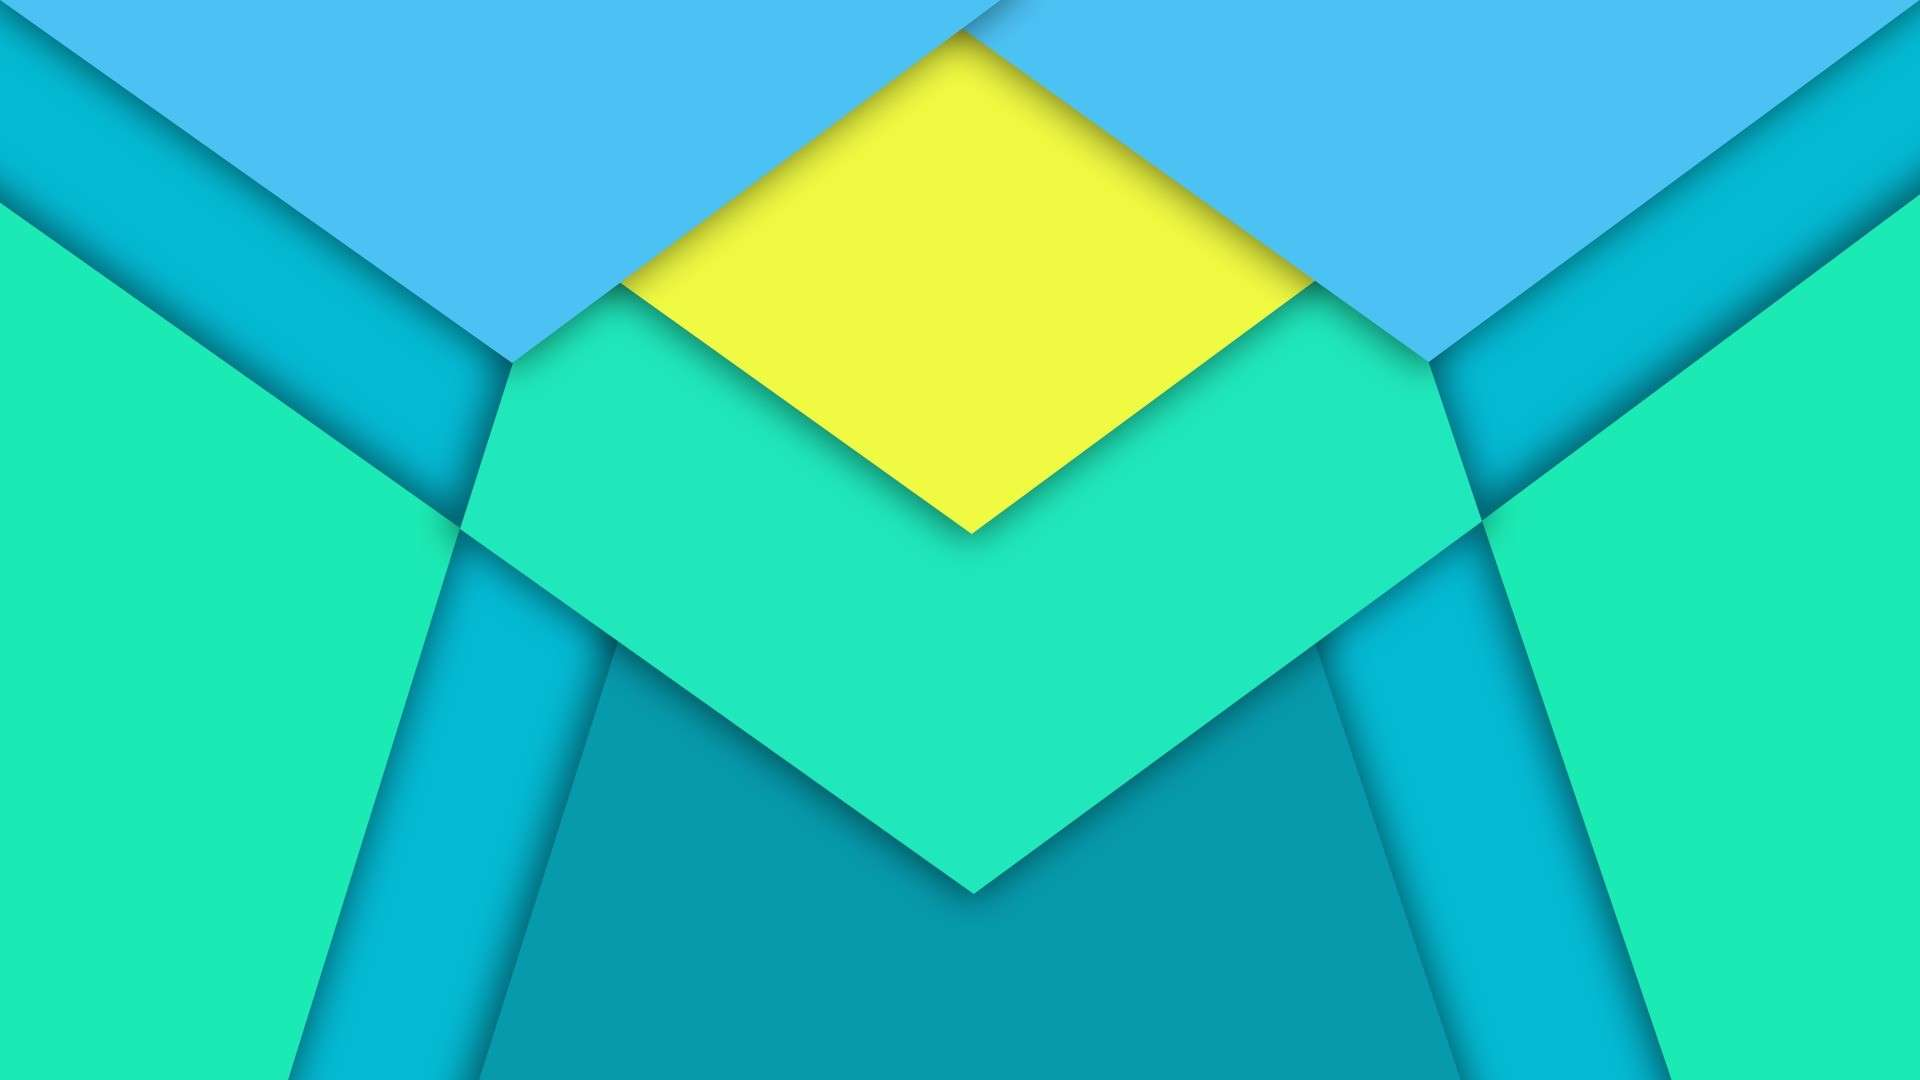 1920x1080 minimalism triangle diamonds material design